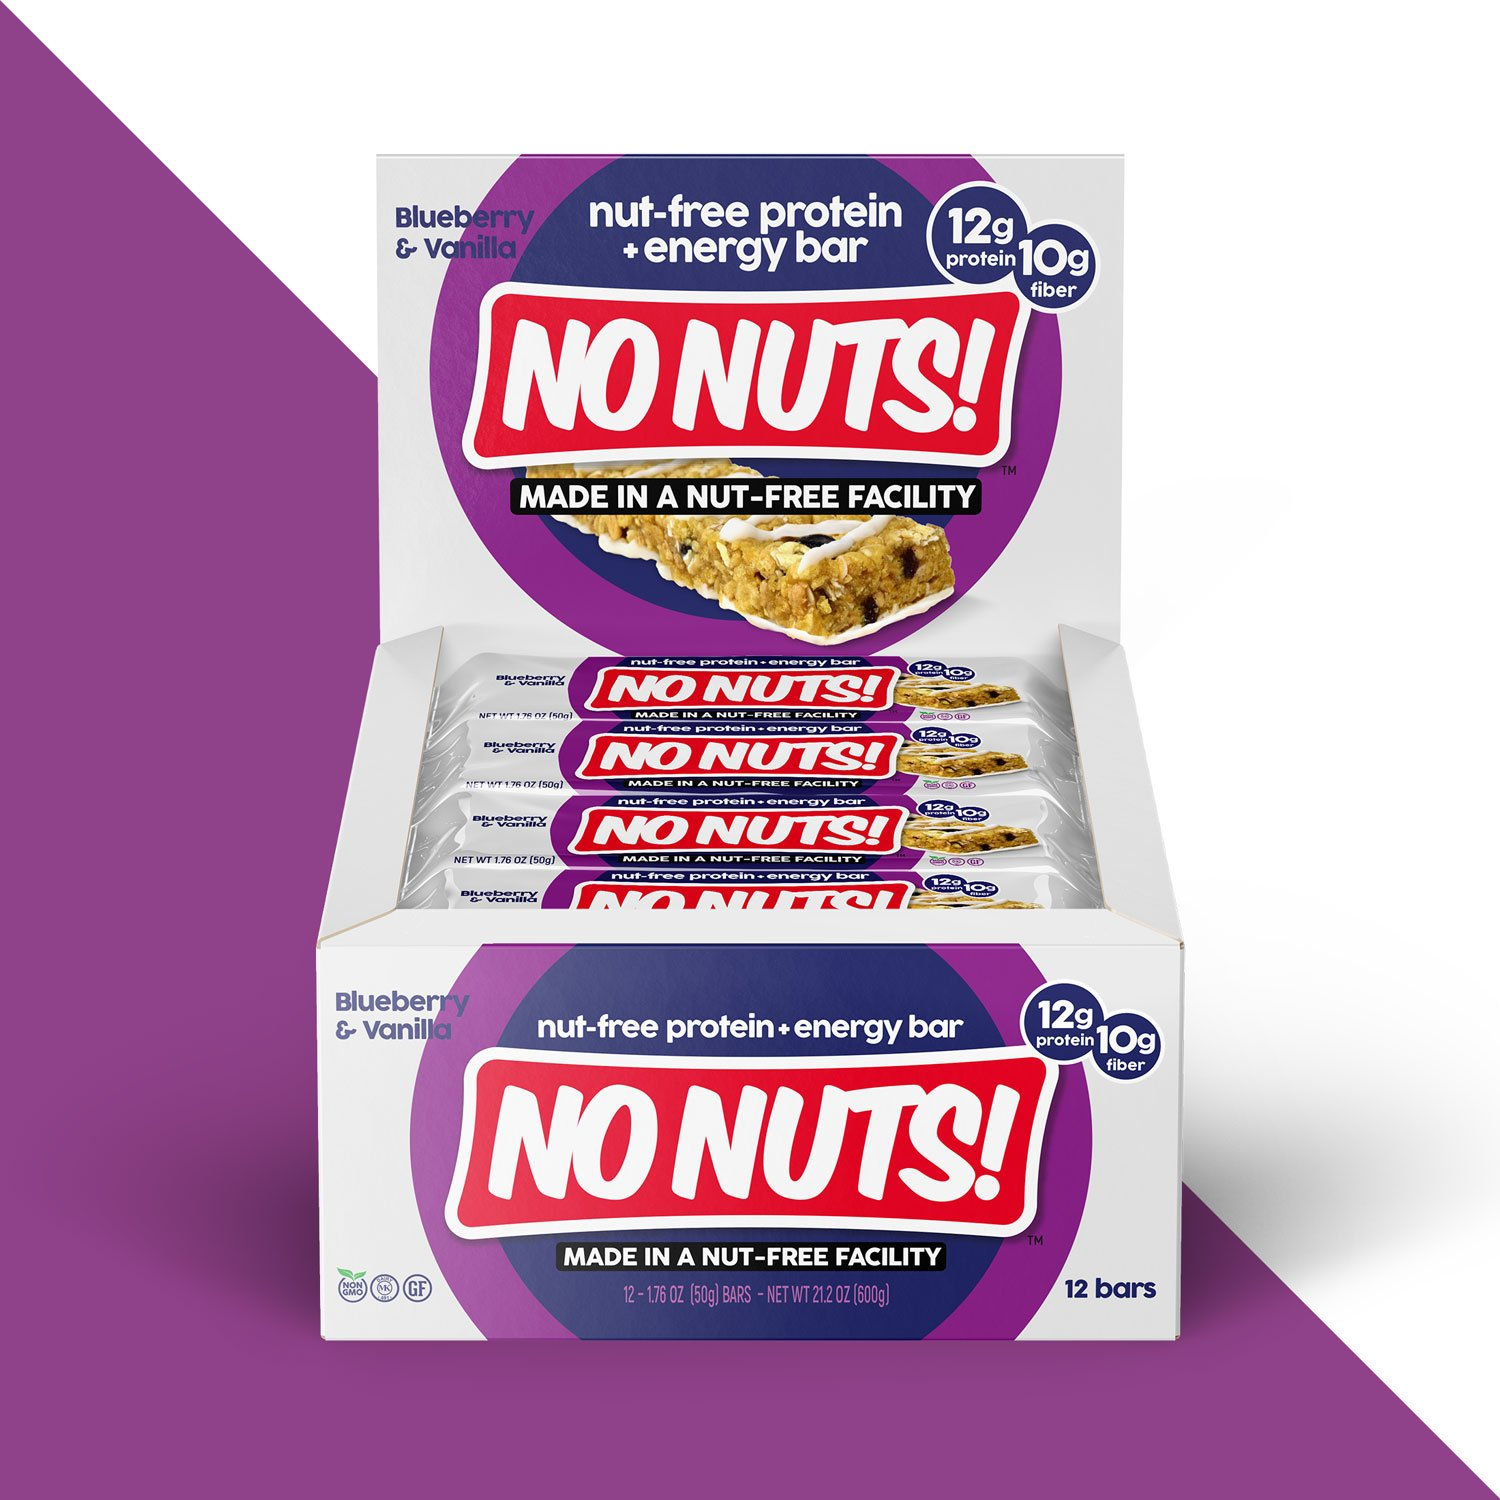 no-nuts-blueberry-vanilla-bar-packaging-carton_2048x2048